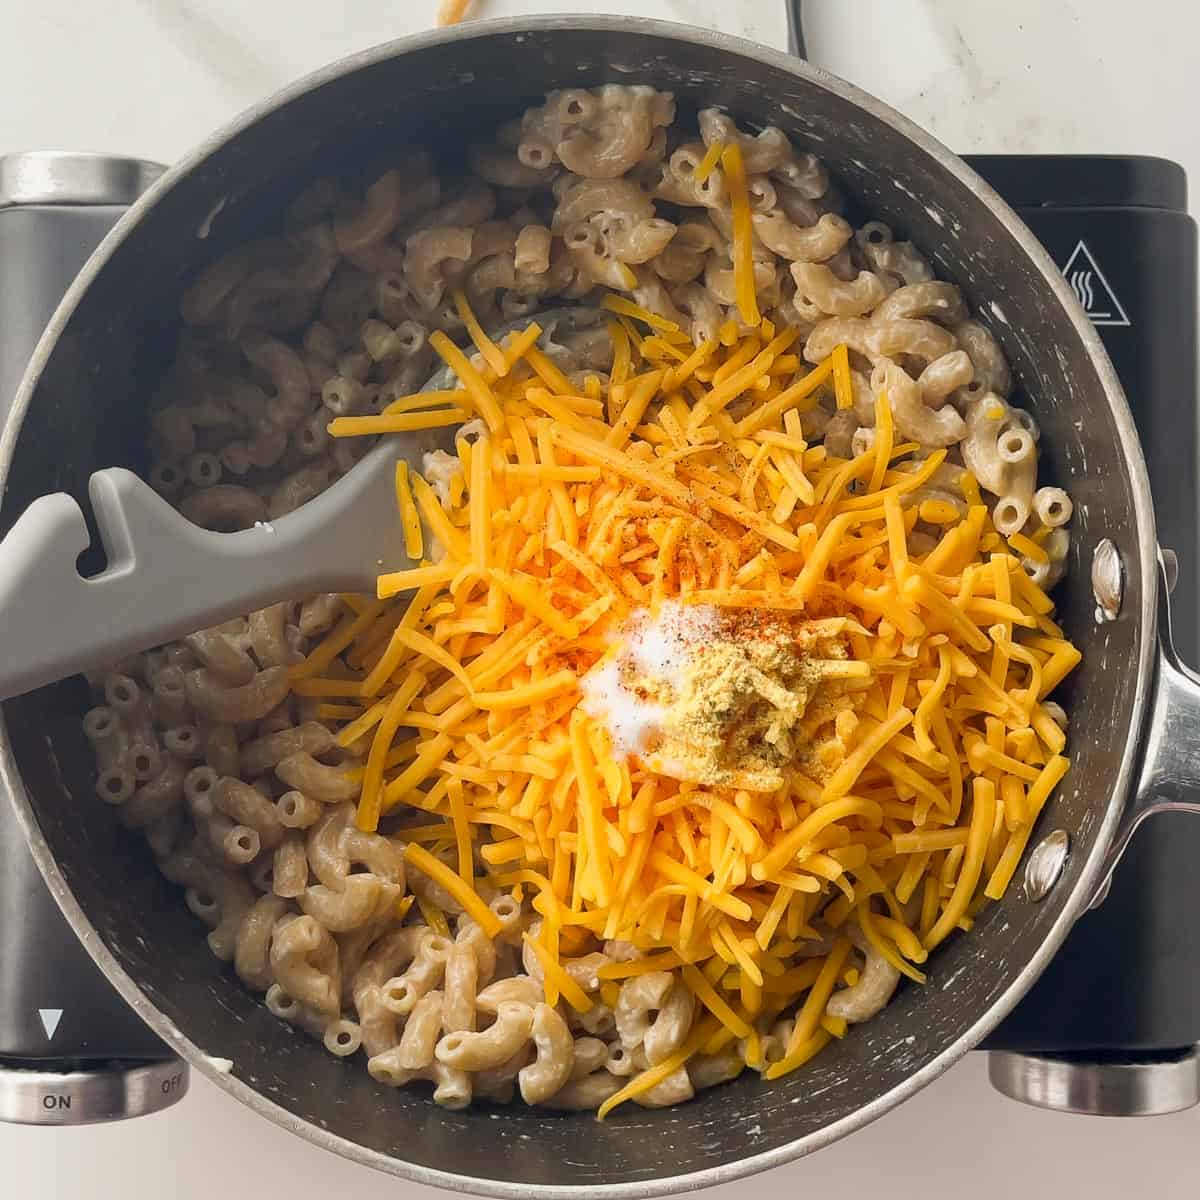 ingredients for cheese sauce tossed into the pot of noodles